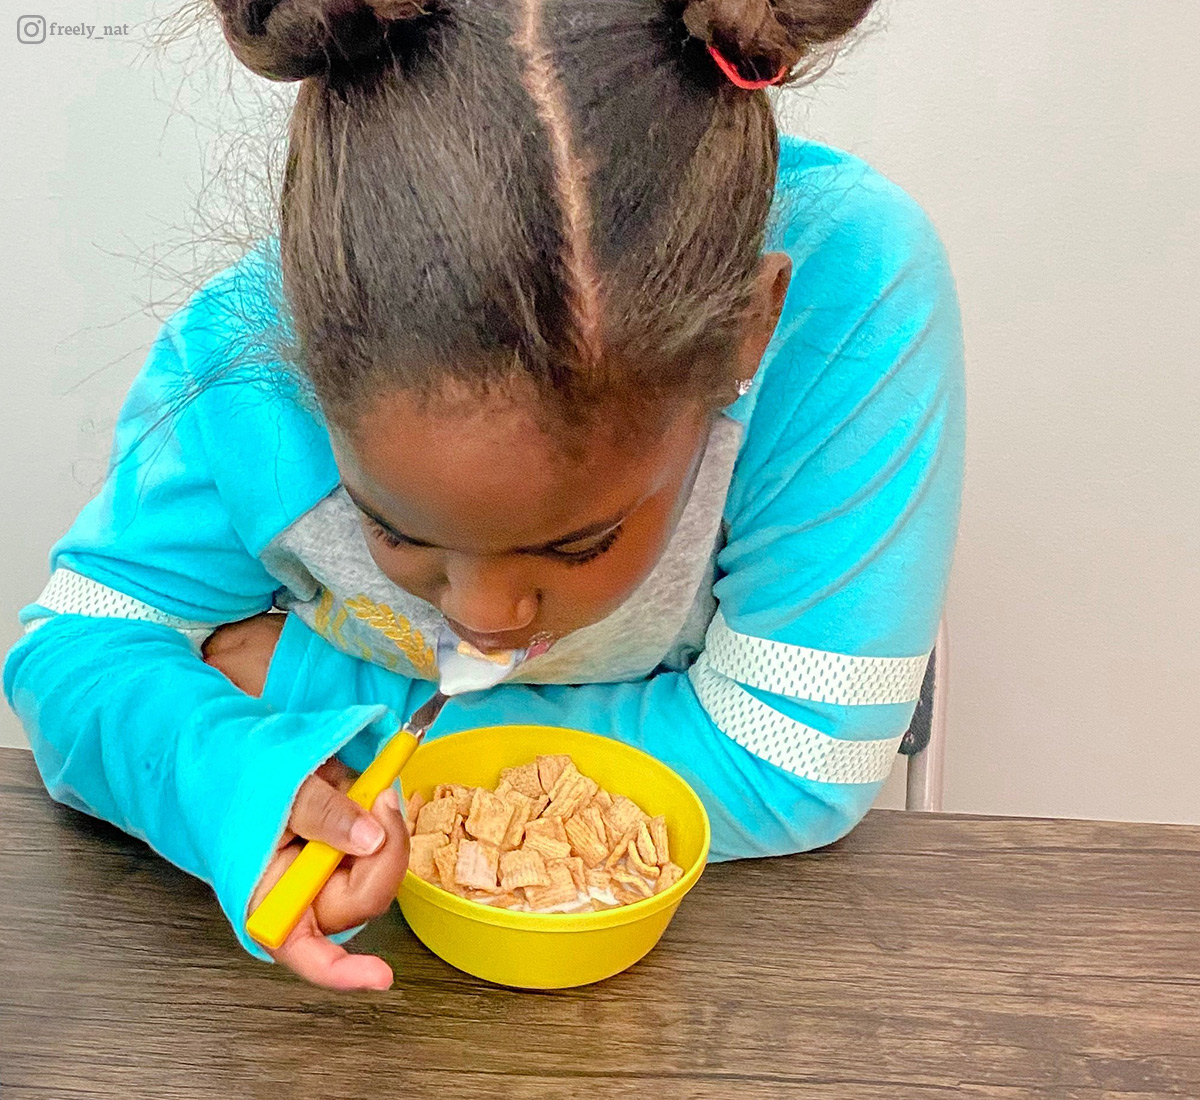 Young girl enjoys a bowl of milk and cereal. Photo contribute by @freely_nat.